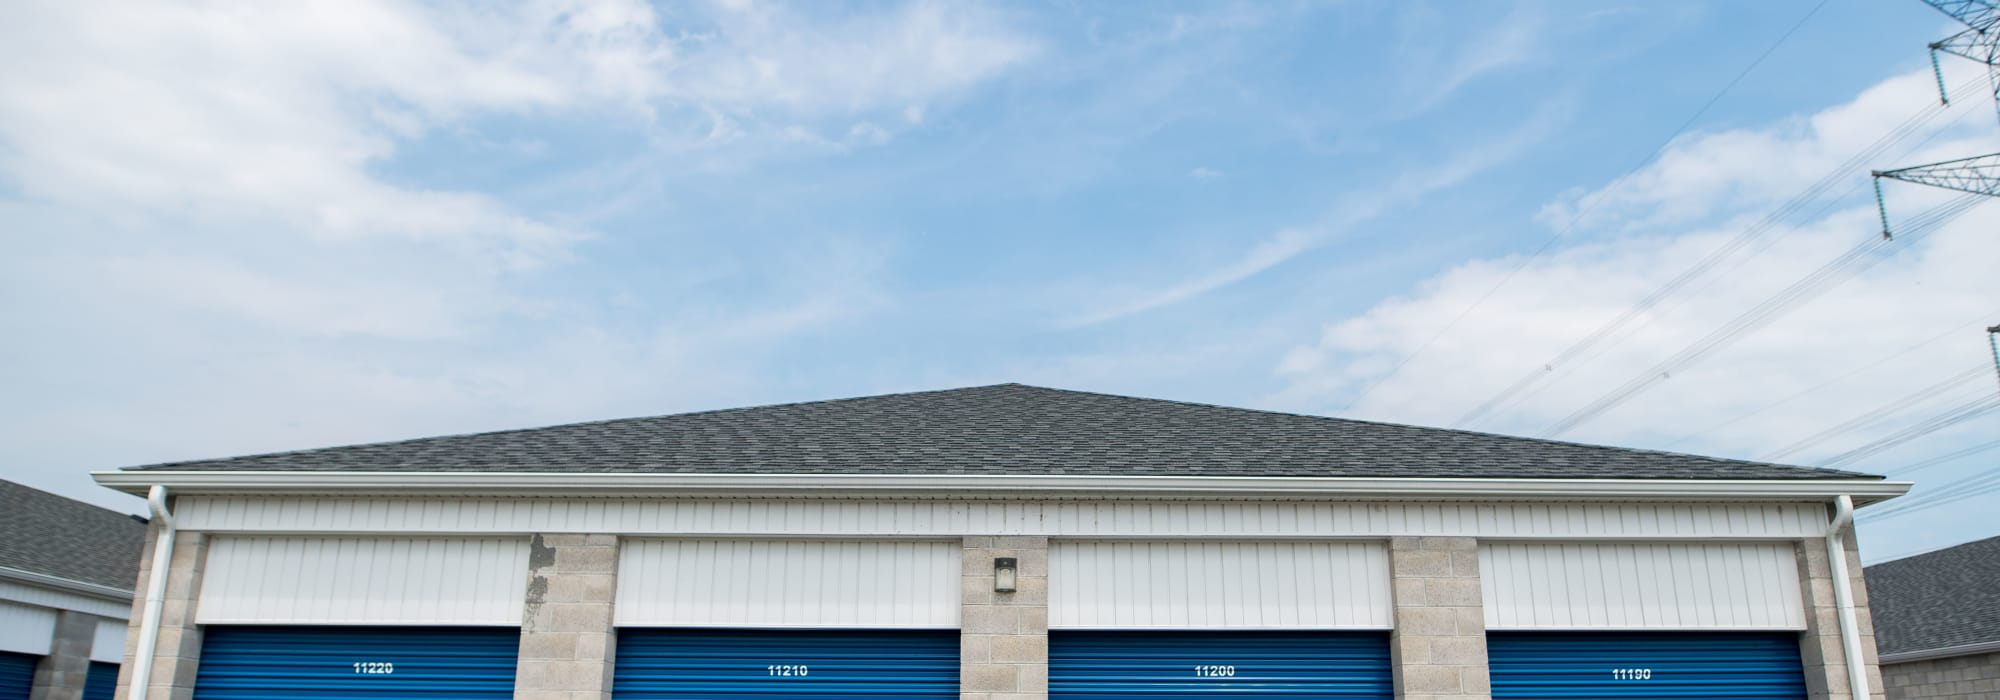 Apple Self Storage - Bowmanville in Bowmanville, Ontario, blue storage unit doors and a sunny sky